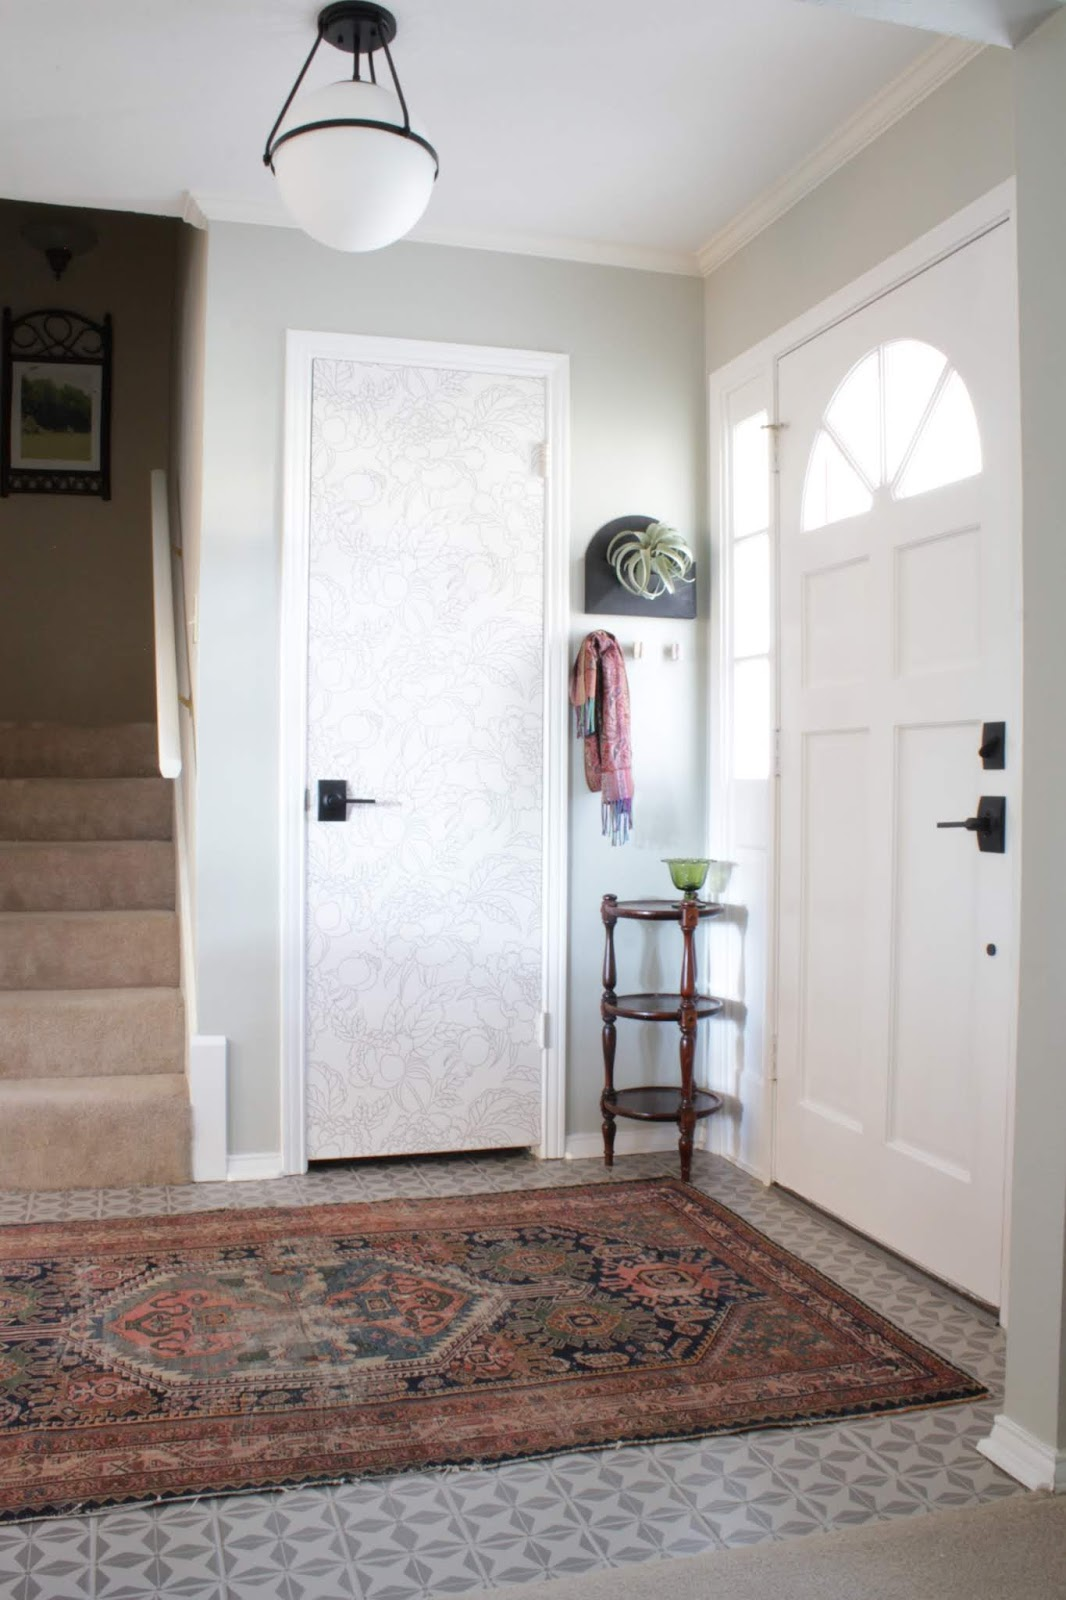 We've lived in our house a whole year!! Check out the tour and a round up of projects I've done. It's been great! | House Homemade stenciled floor, wallpapered door entryway